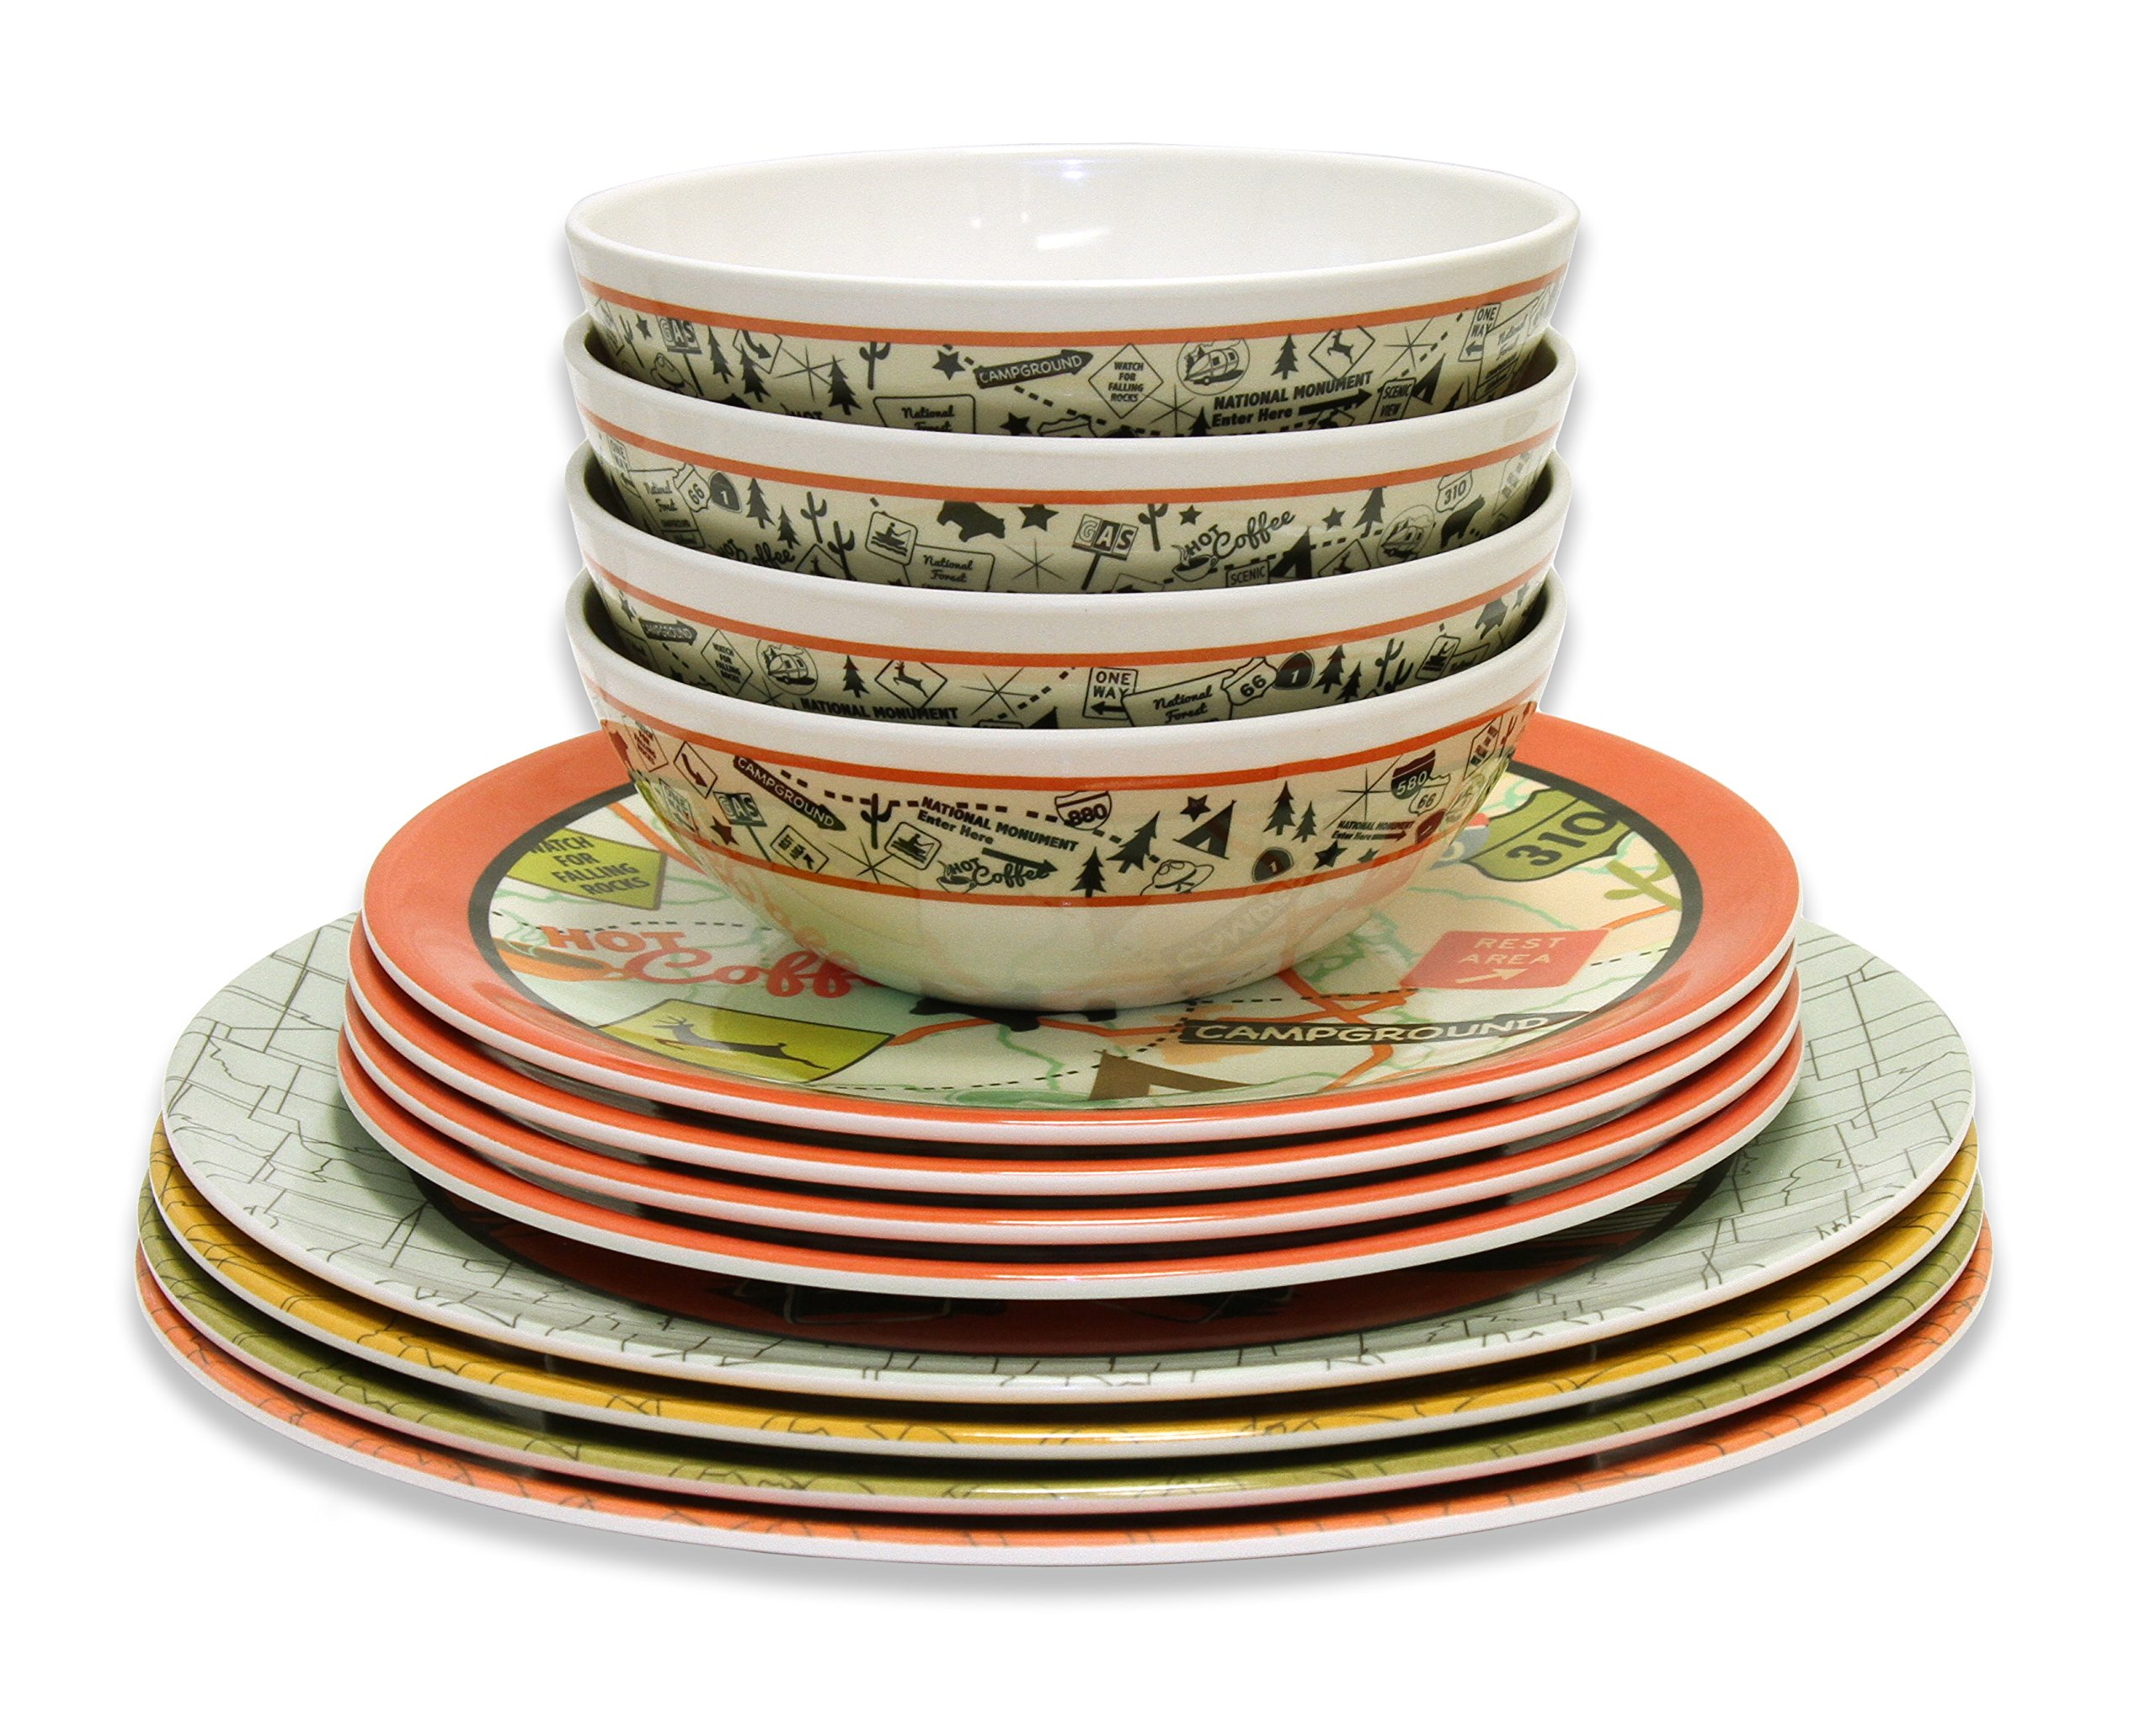 Camp Casual CC-001 12-Piece Dish Set by Camp Casual (Image #5)